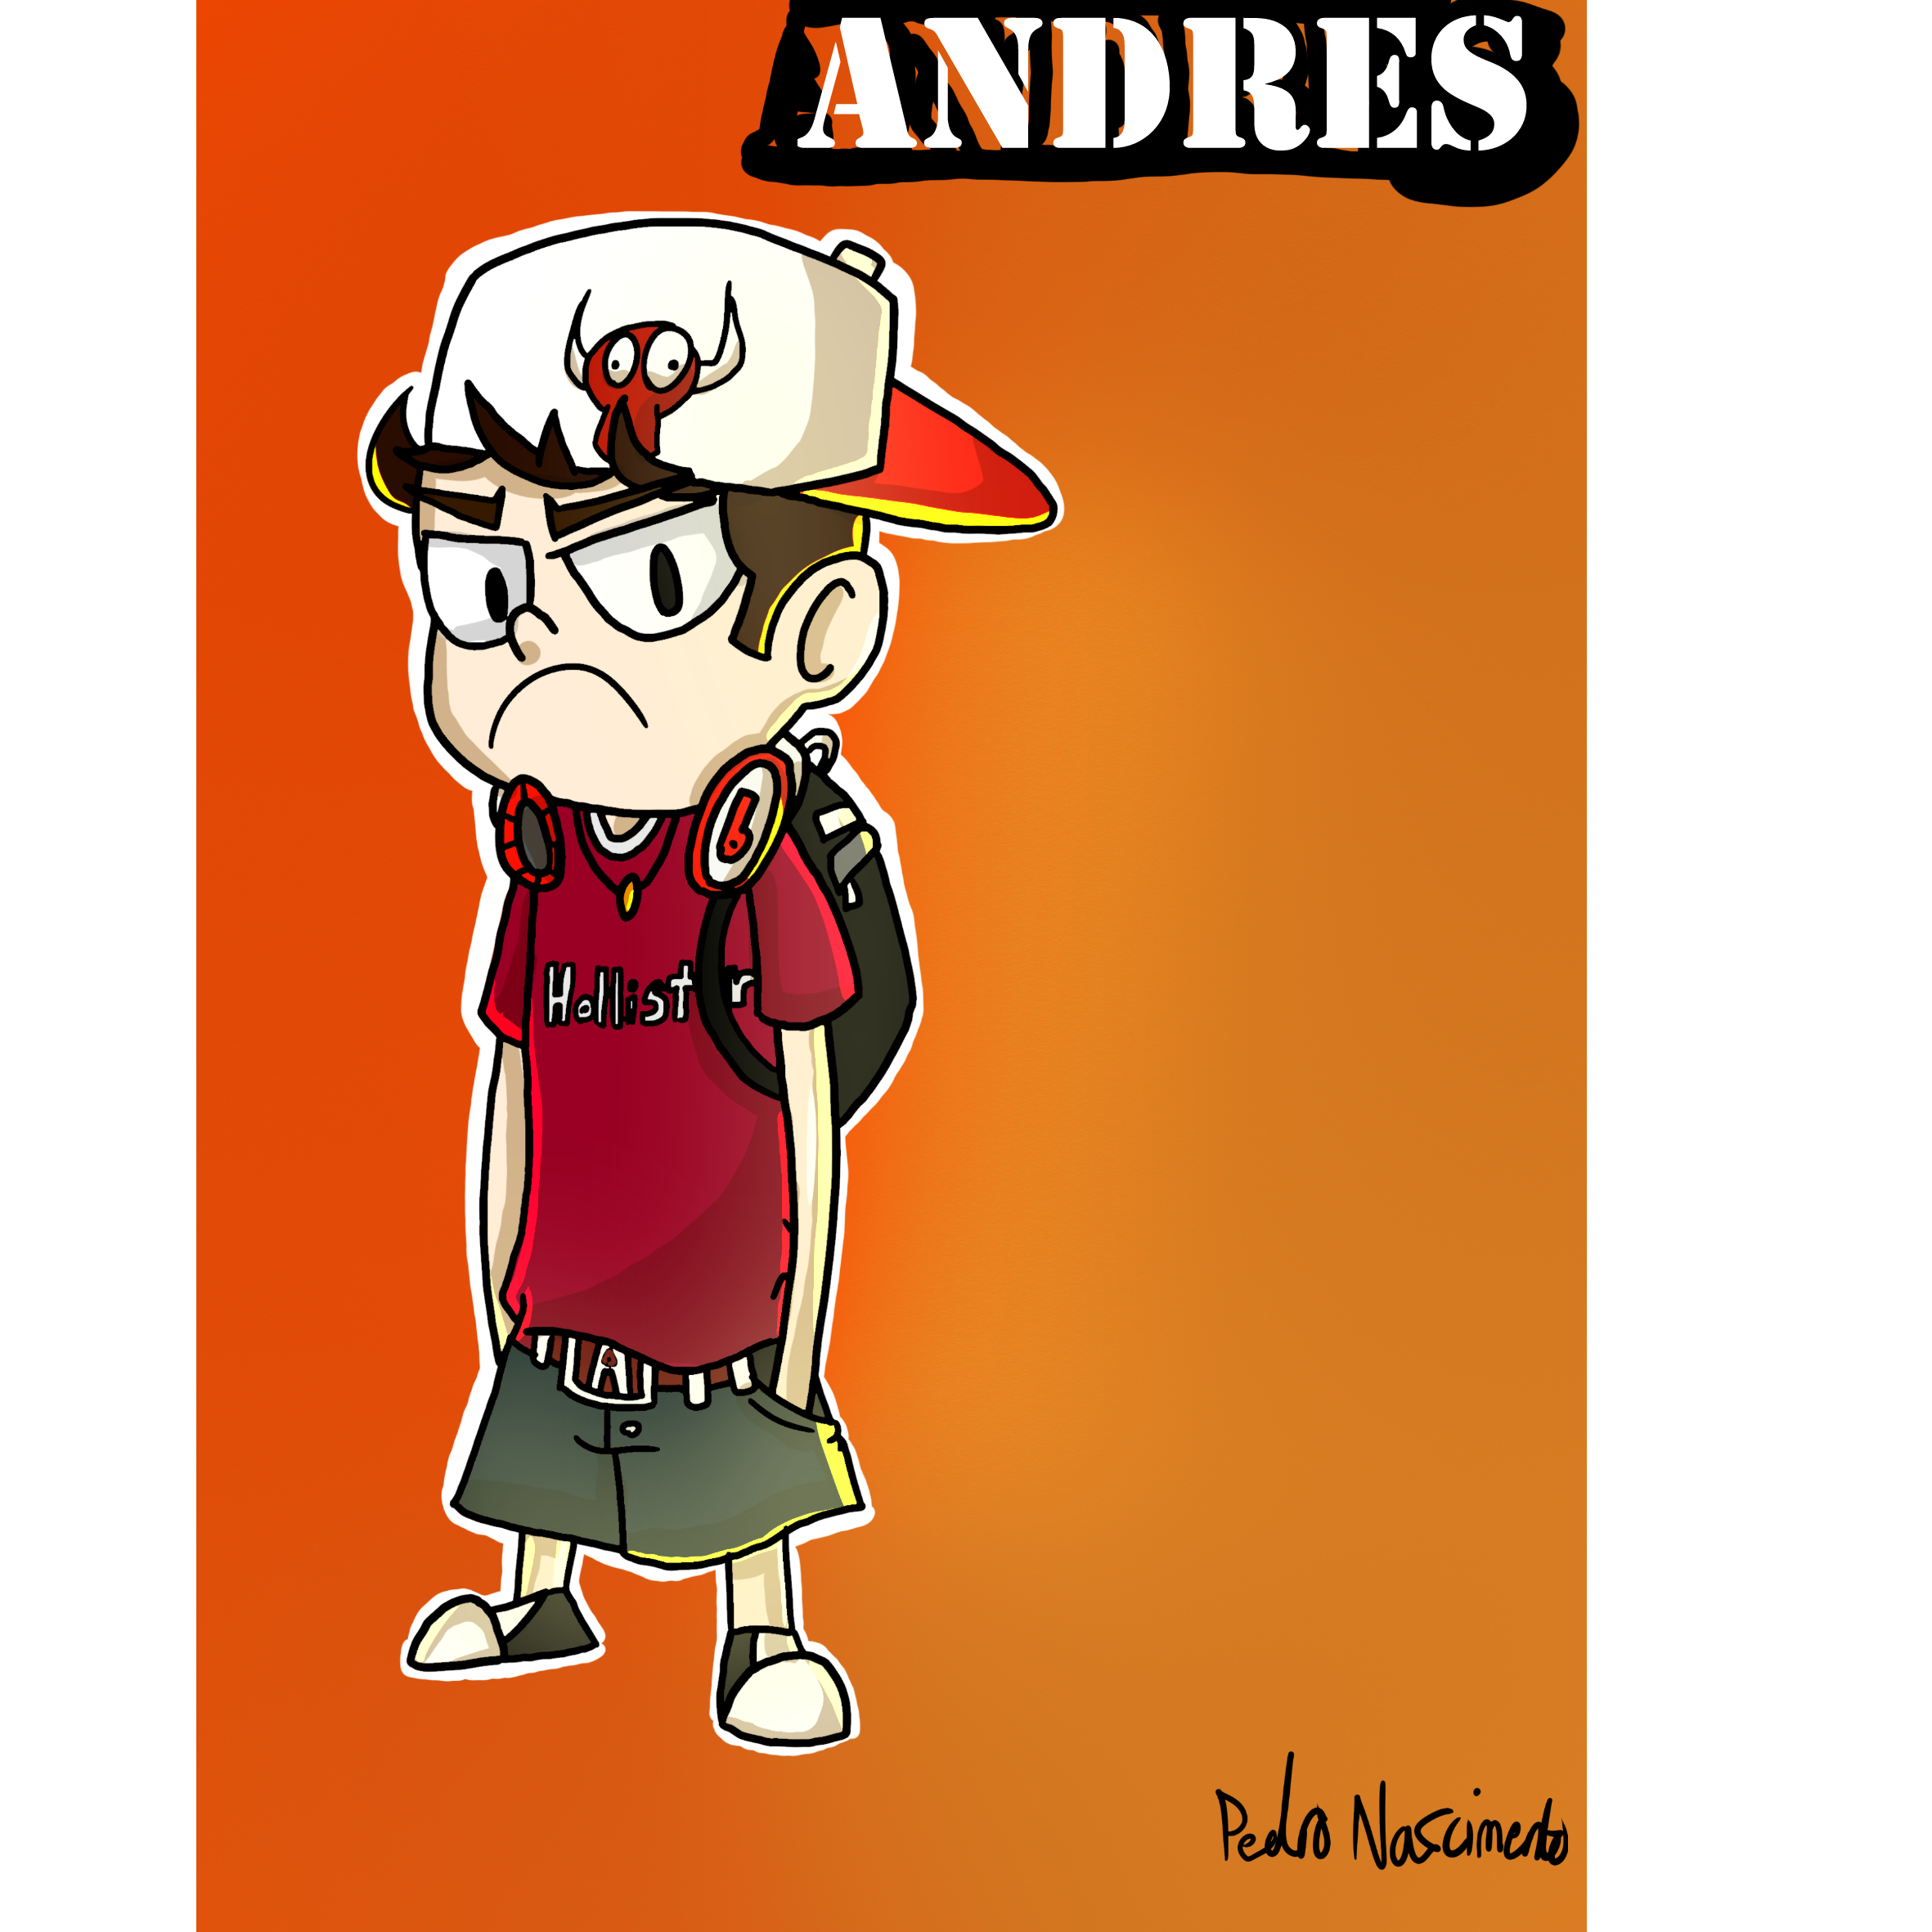 Andres